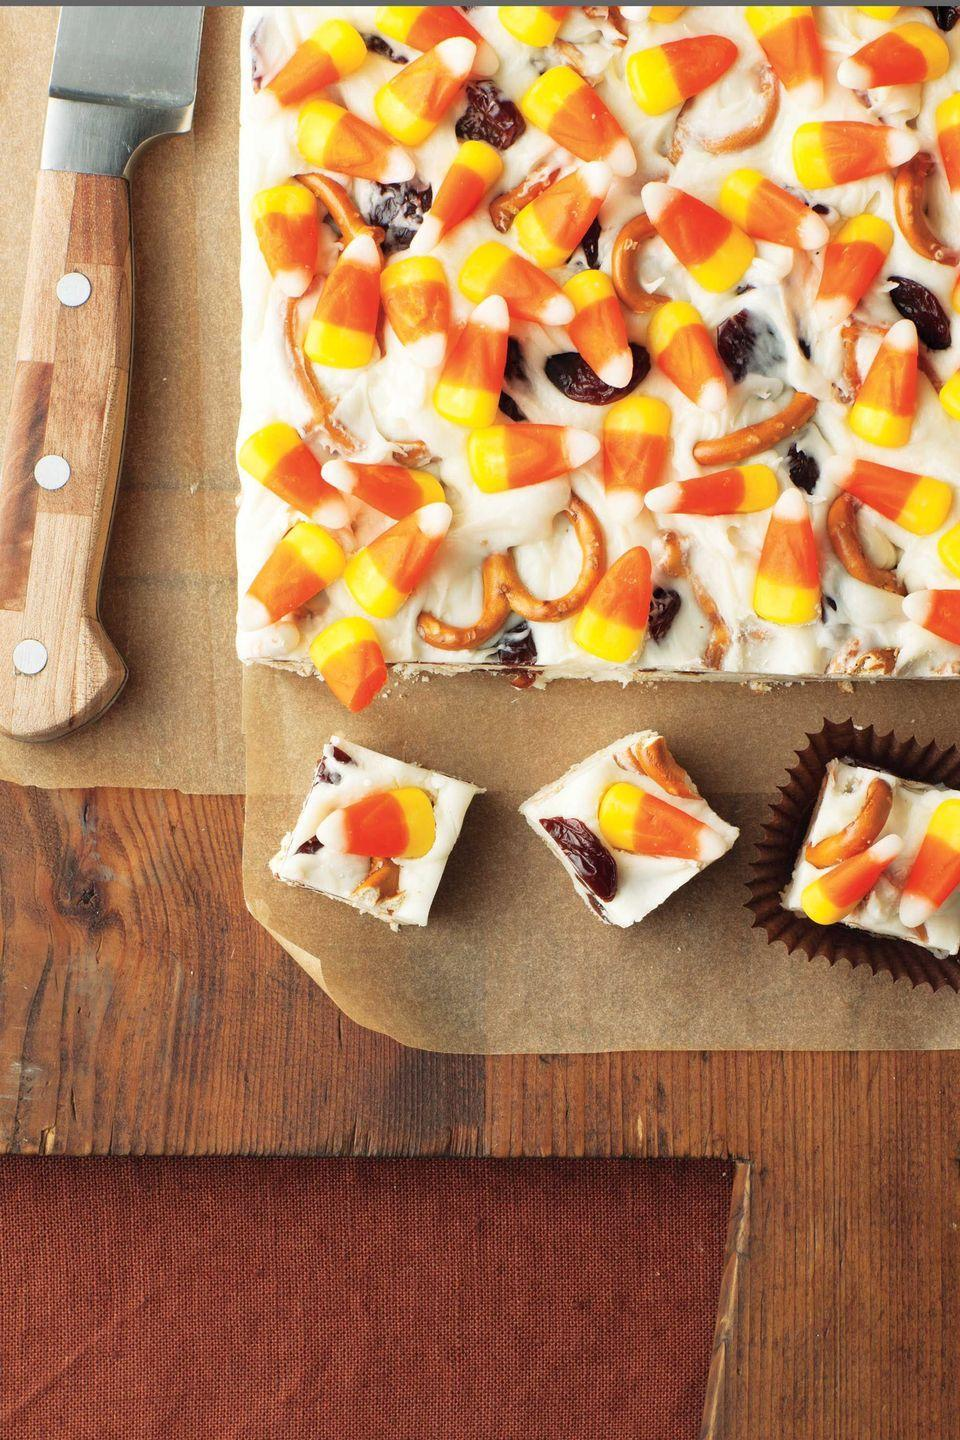 """<p>These colorful treats may sound super sweet, but a few key ingredients keep them balanced: cream cheese for tanginess, pretzels for a salty kick, and dried cherries for a touch of tartness. </p><p><strong><em><a href=""""https://www.womansday.com/food-recipes/food-drinks/recipes/a11819/candy-corn-fudge-recipe-123647/"""" rel=""""nofollow noopener"""" target=""""_blank"""" data-ylk=""""slk:Get the Candy Corn Fudge recipe."""" class=""""link rapid-noclick-resp"""">Get the Candy Corn Fudge recipe. </a></em></strong></p><p><strong>What You'll Need: </strong><a href=""""https://www.amazon.com/Jelly-Belly-Gourmet-Candy-Ounce/dp/B00AYGEFAQ?tag=syn-yahoo-20&ascsubtag=%5Bartid%7C10070.g.1289%5Bsrc%7Cyahoo-us"""" rel=""""nofollow noopener"""" target=""""_blank"""" data-ylk=""""slk:Jelly Belly Gourmet Candy Corn"""" class=""""link rapid-noclick-resp"""">Jelly Belly Gourmet Candy Corn</a> ($10, Amazon)</p>"""